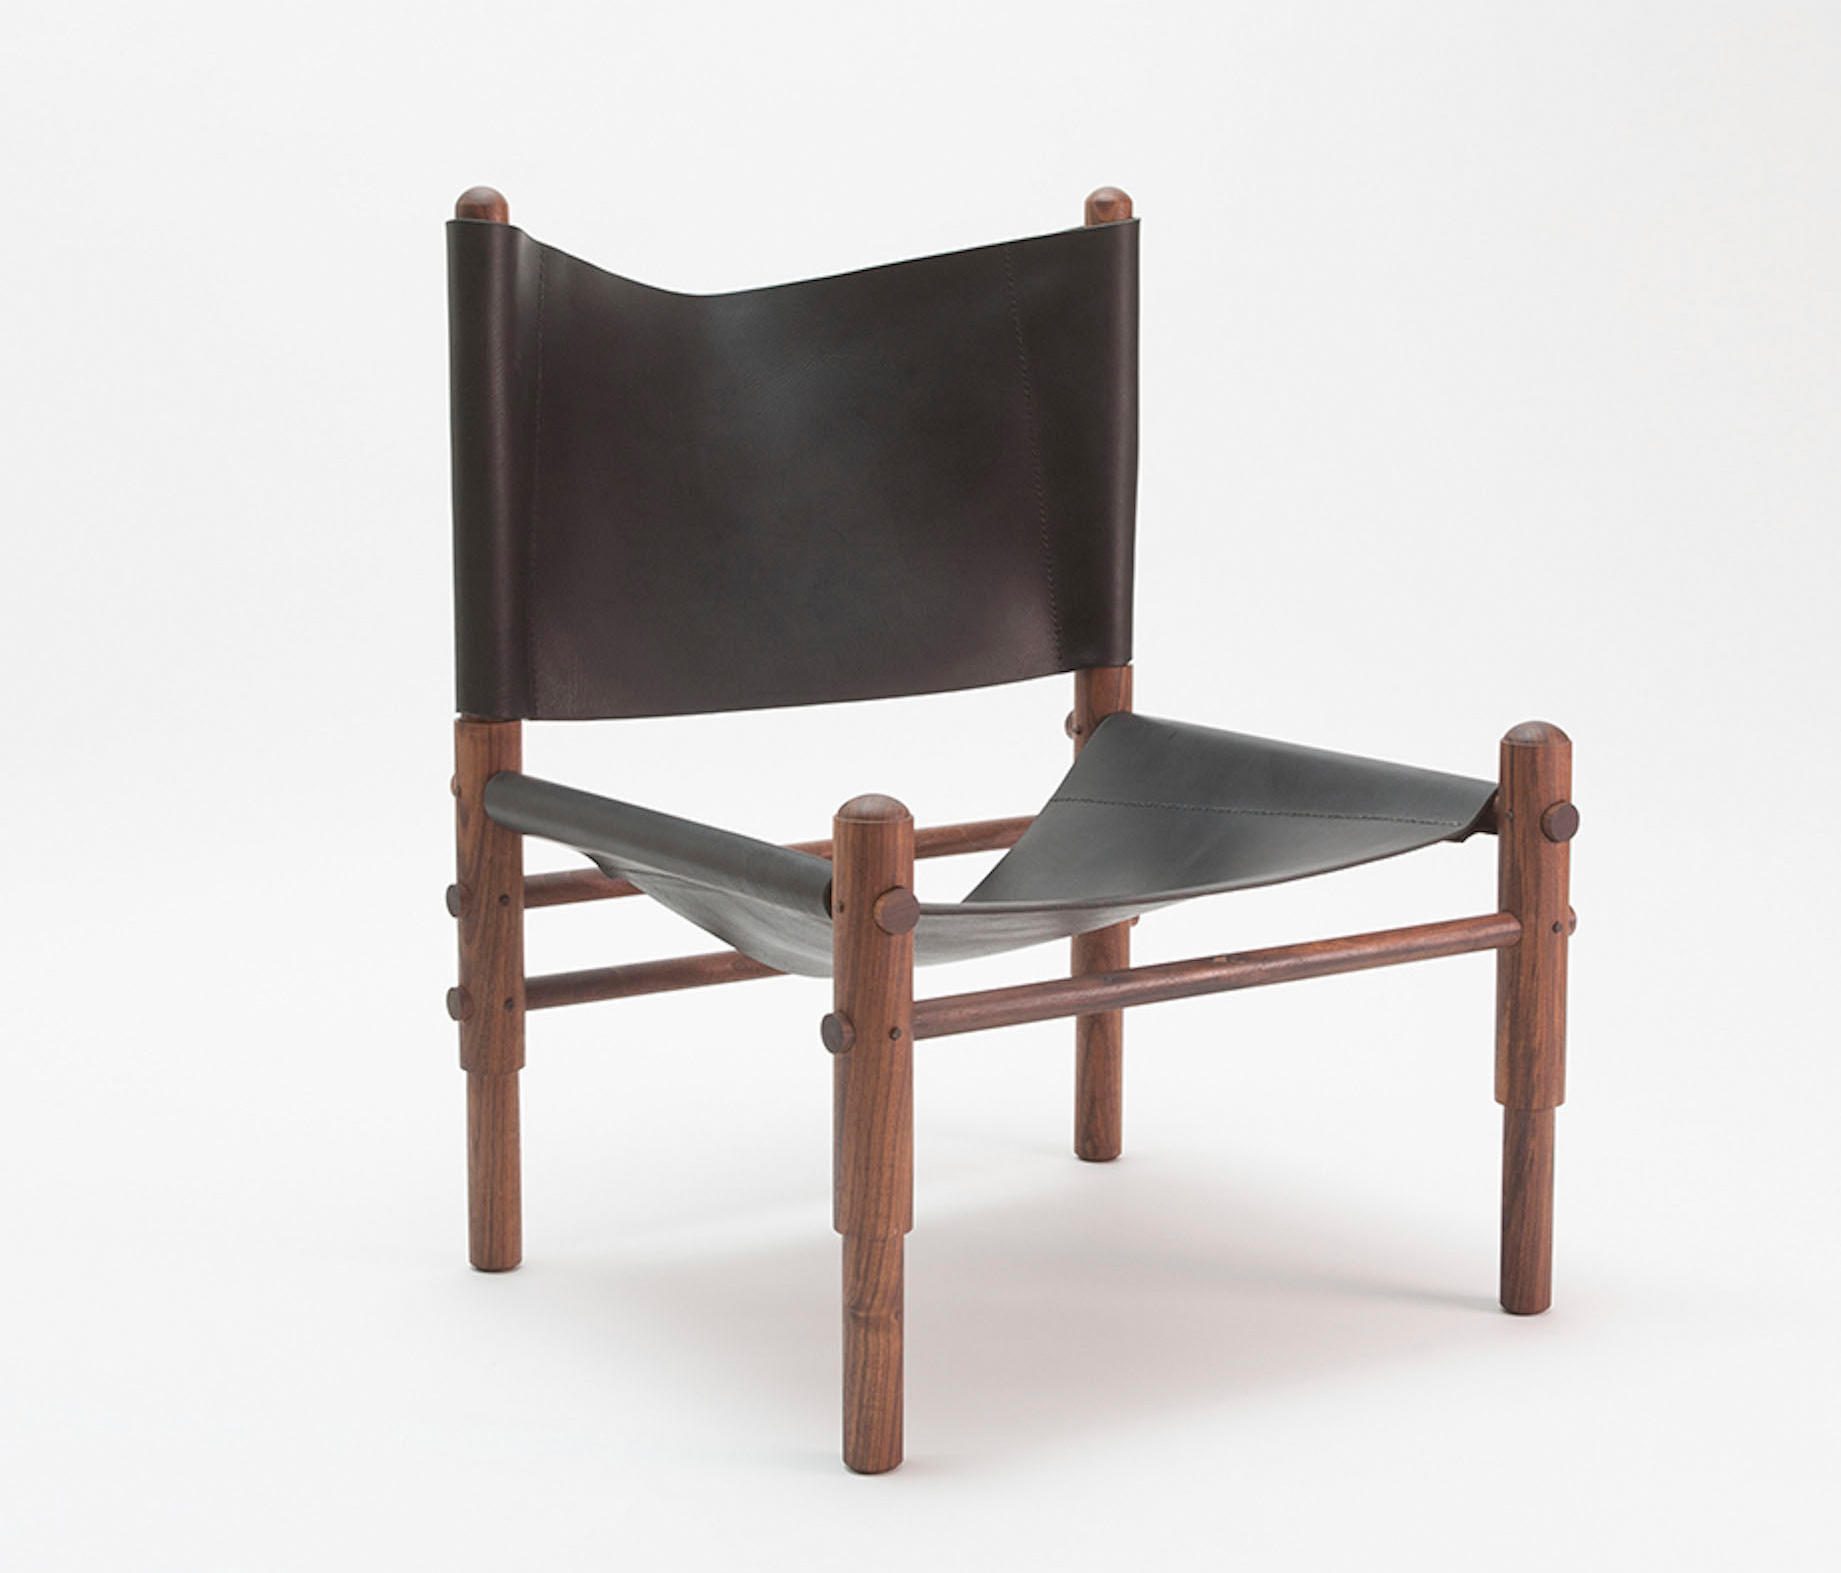 SLING CHAIR WALNUT Lounge chairs from Workstead